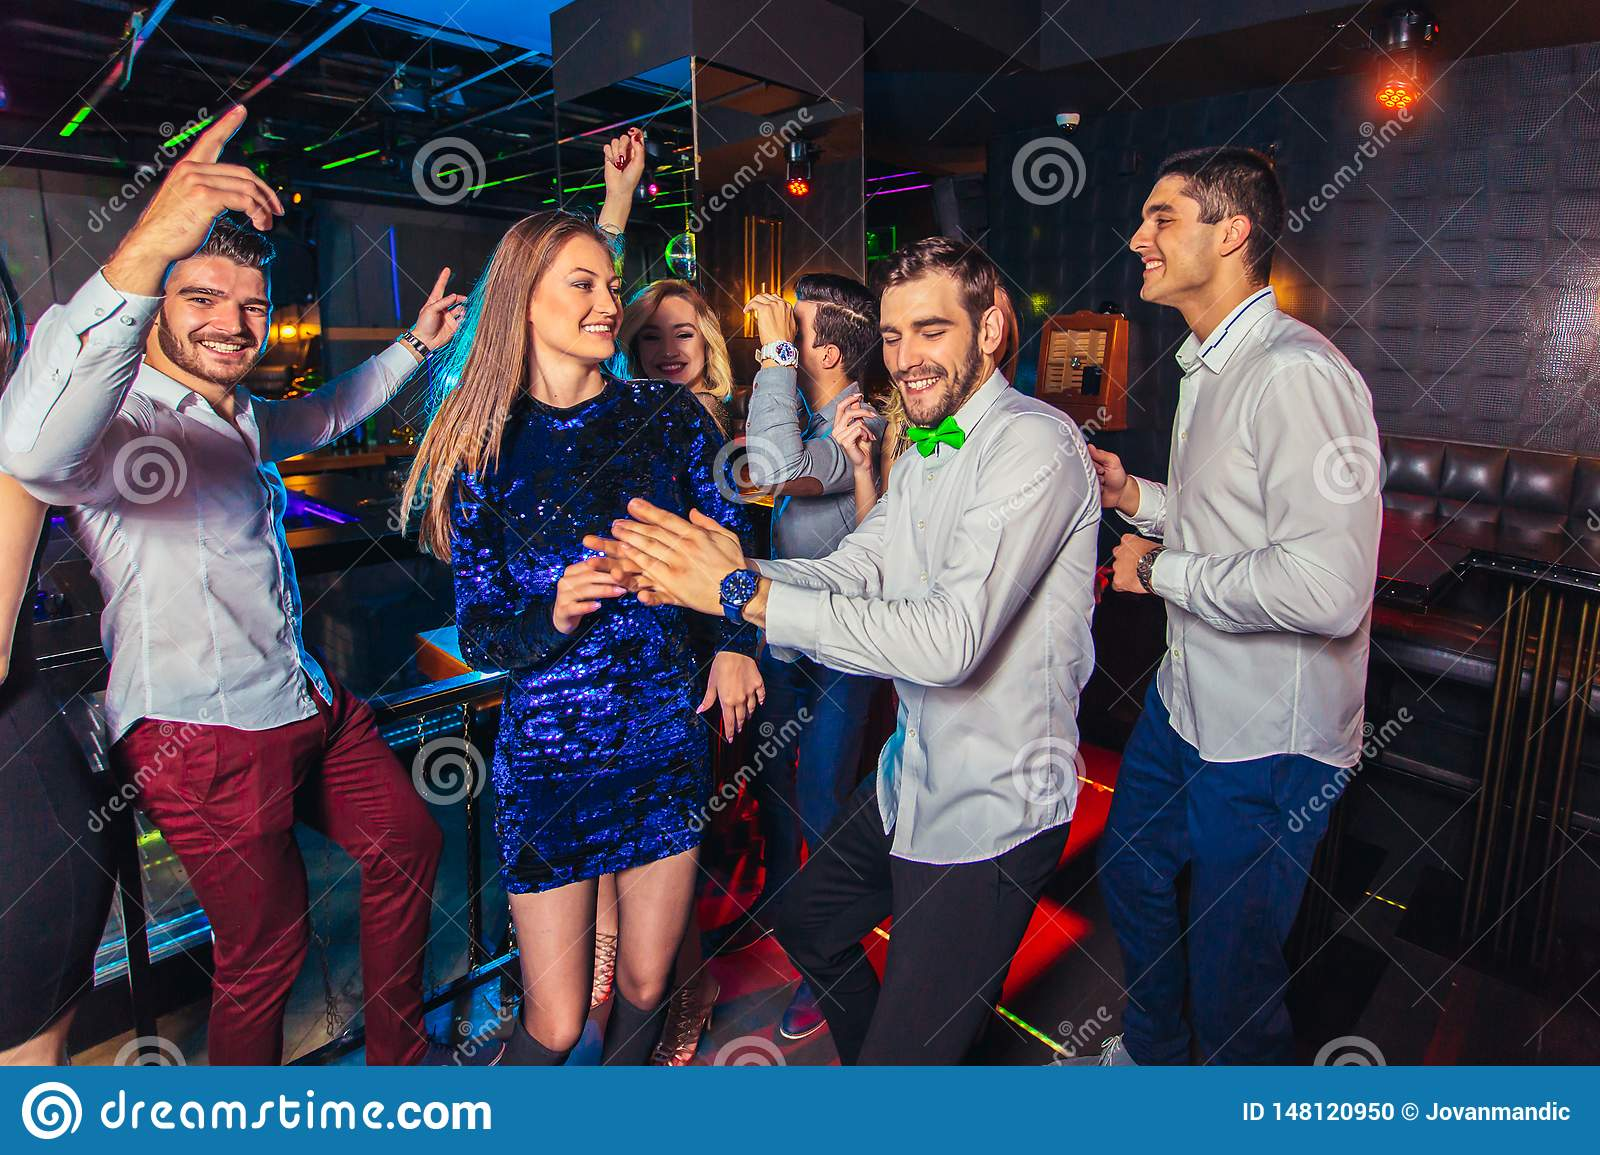 Friends partying in a nightclub